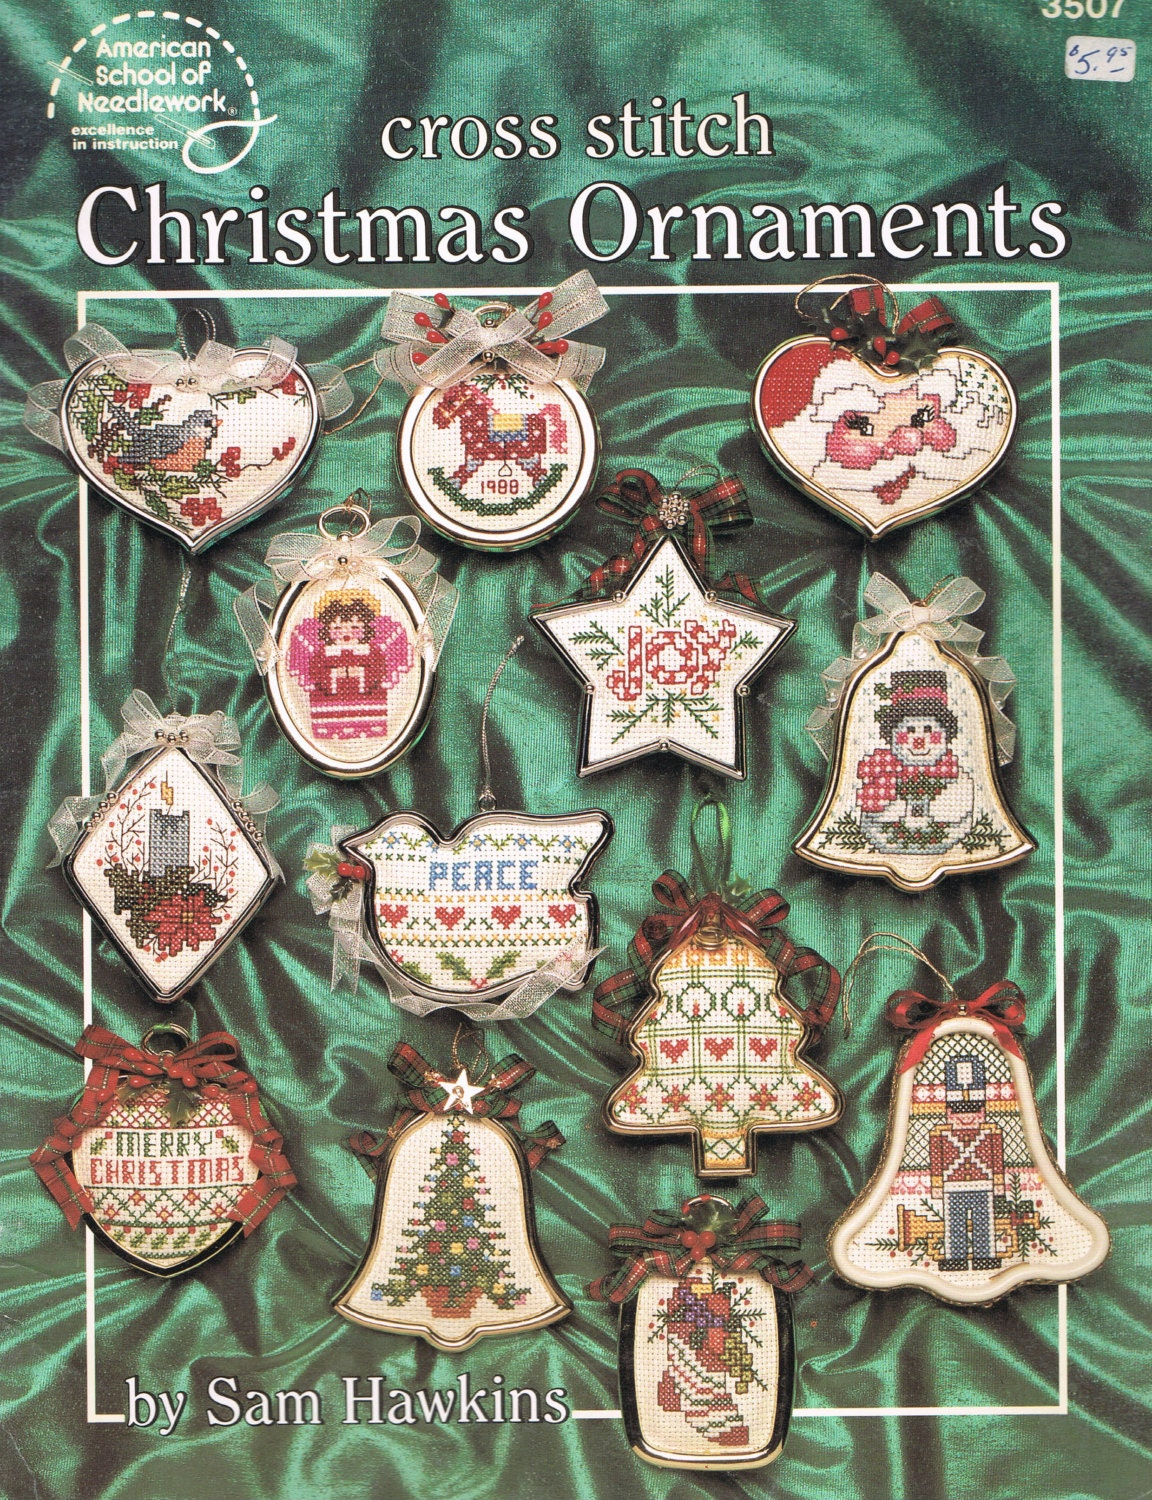 CROSS STITCH PATTERN Cross Stitch Christmas Tree Ornaments